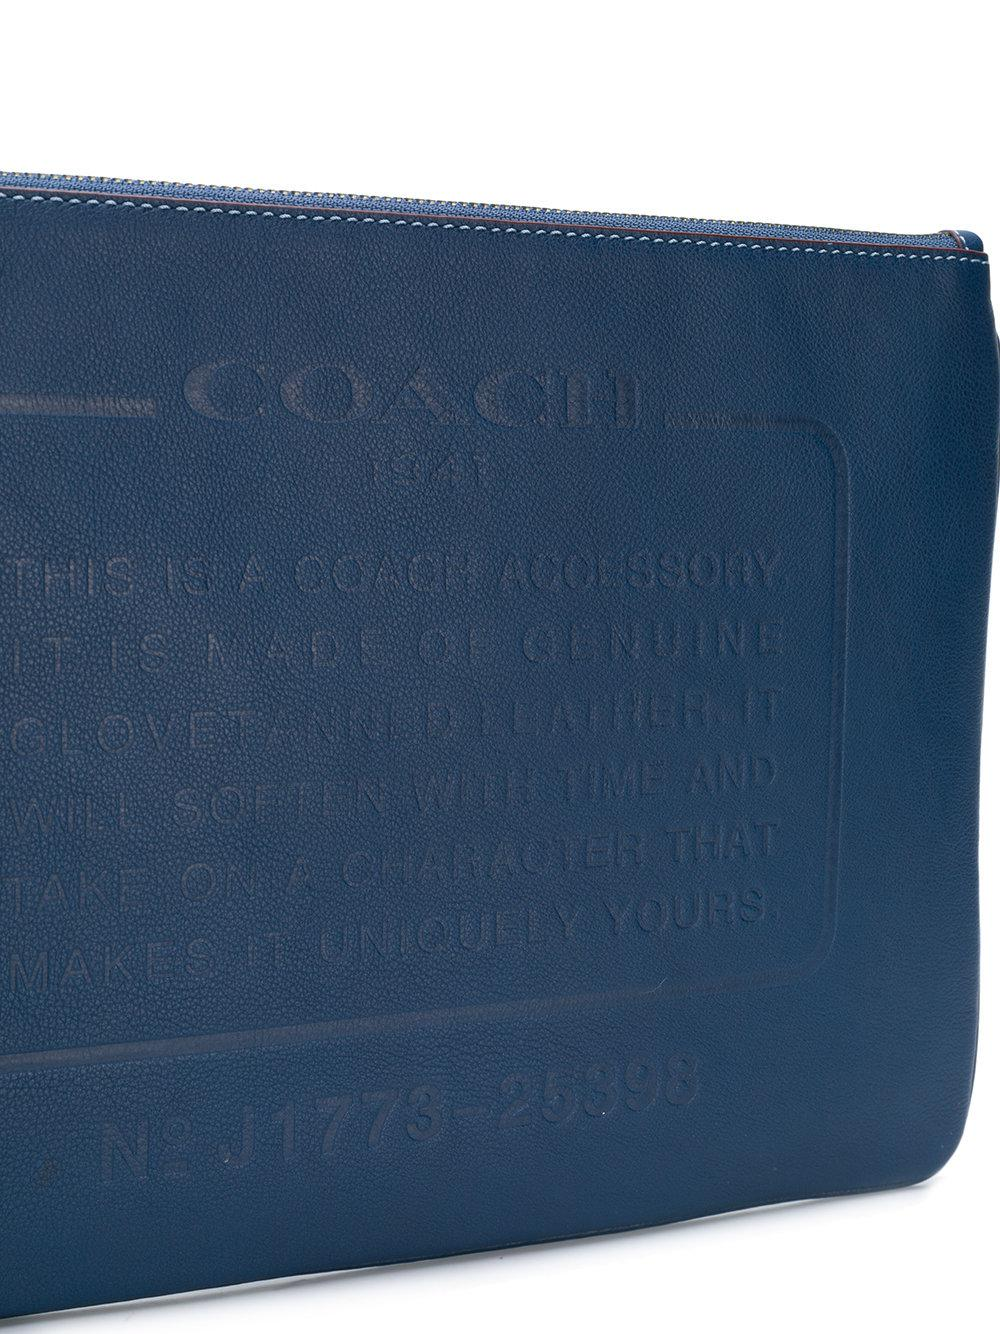 23427e4993 Lyst - COACH Storypatch Pouch Bag in Blue for Men